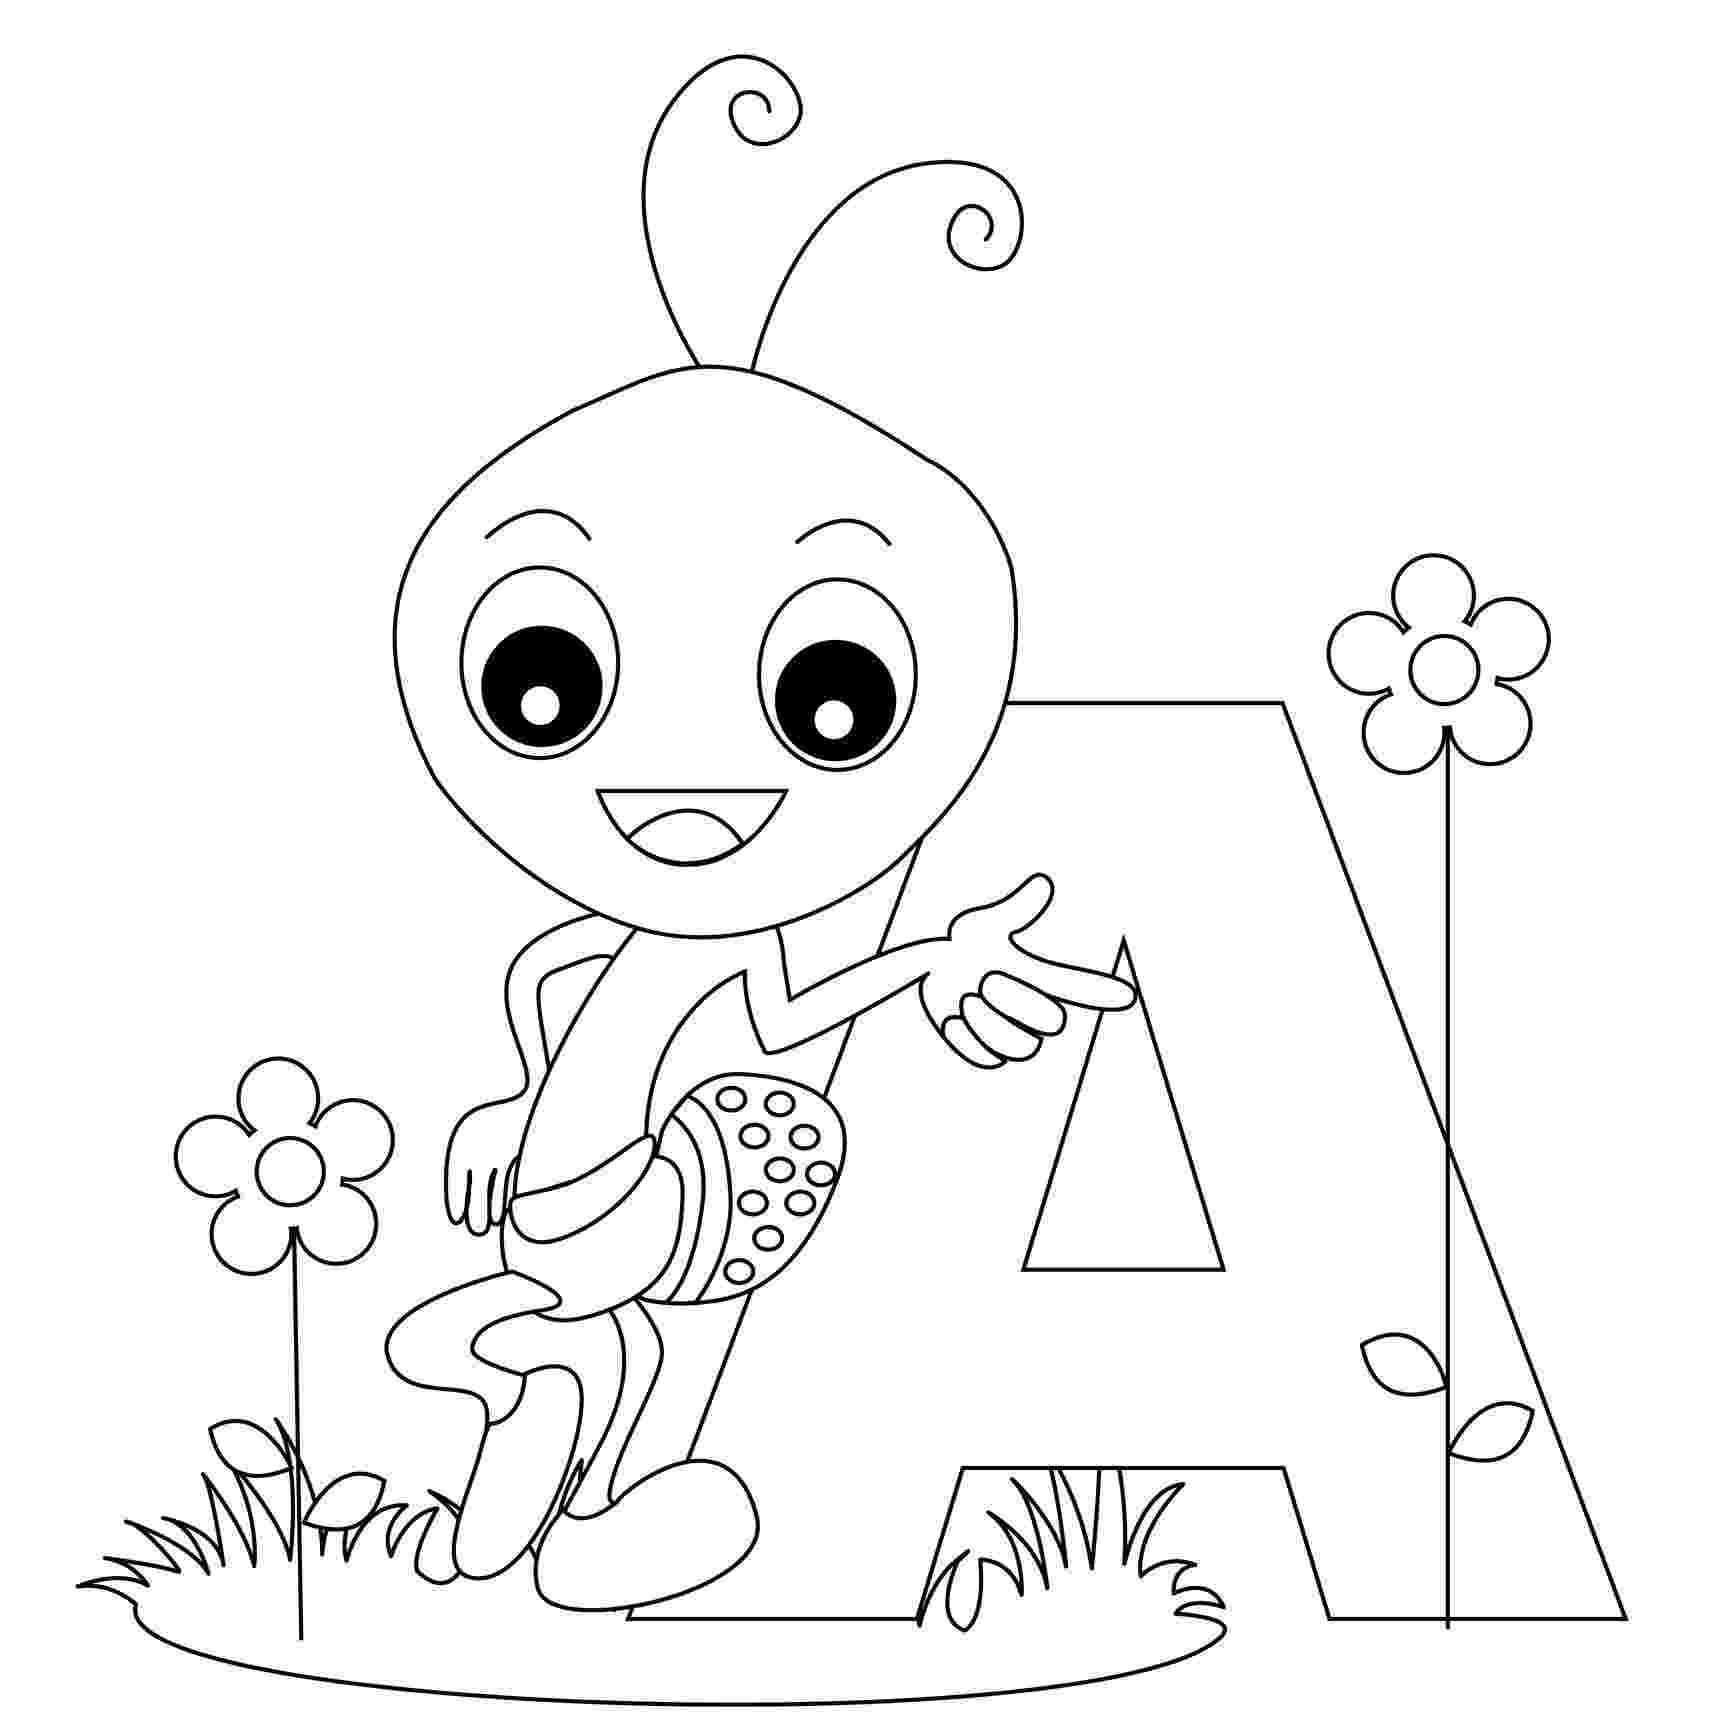 coloring pages of letters free printable alphabet coloring pages for kids best letters coloring of pages